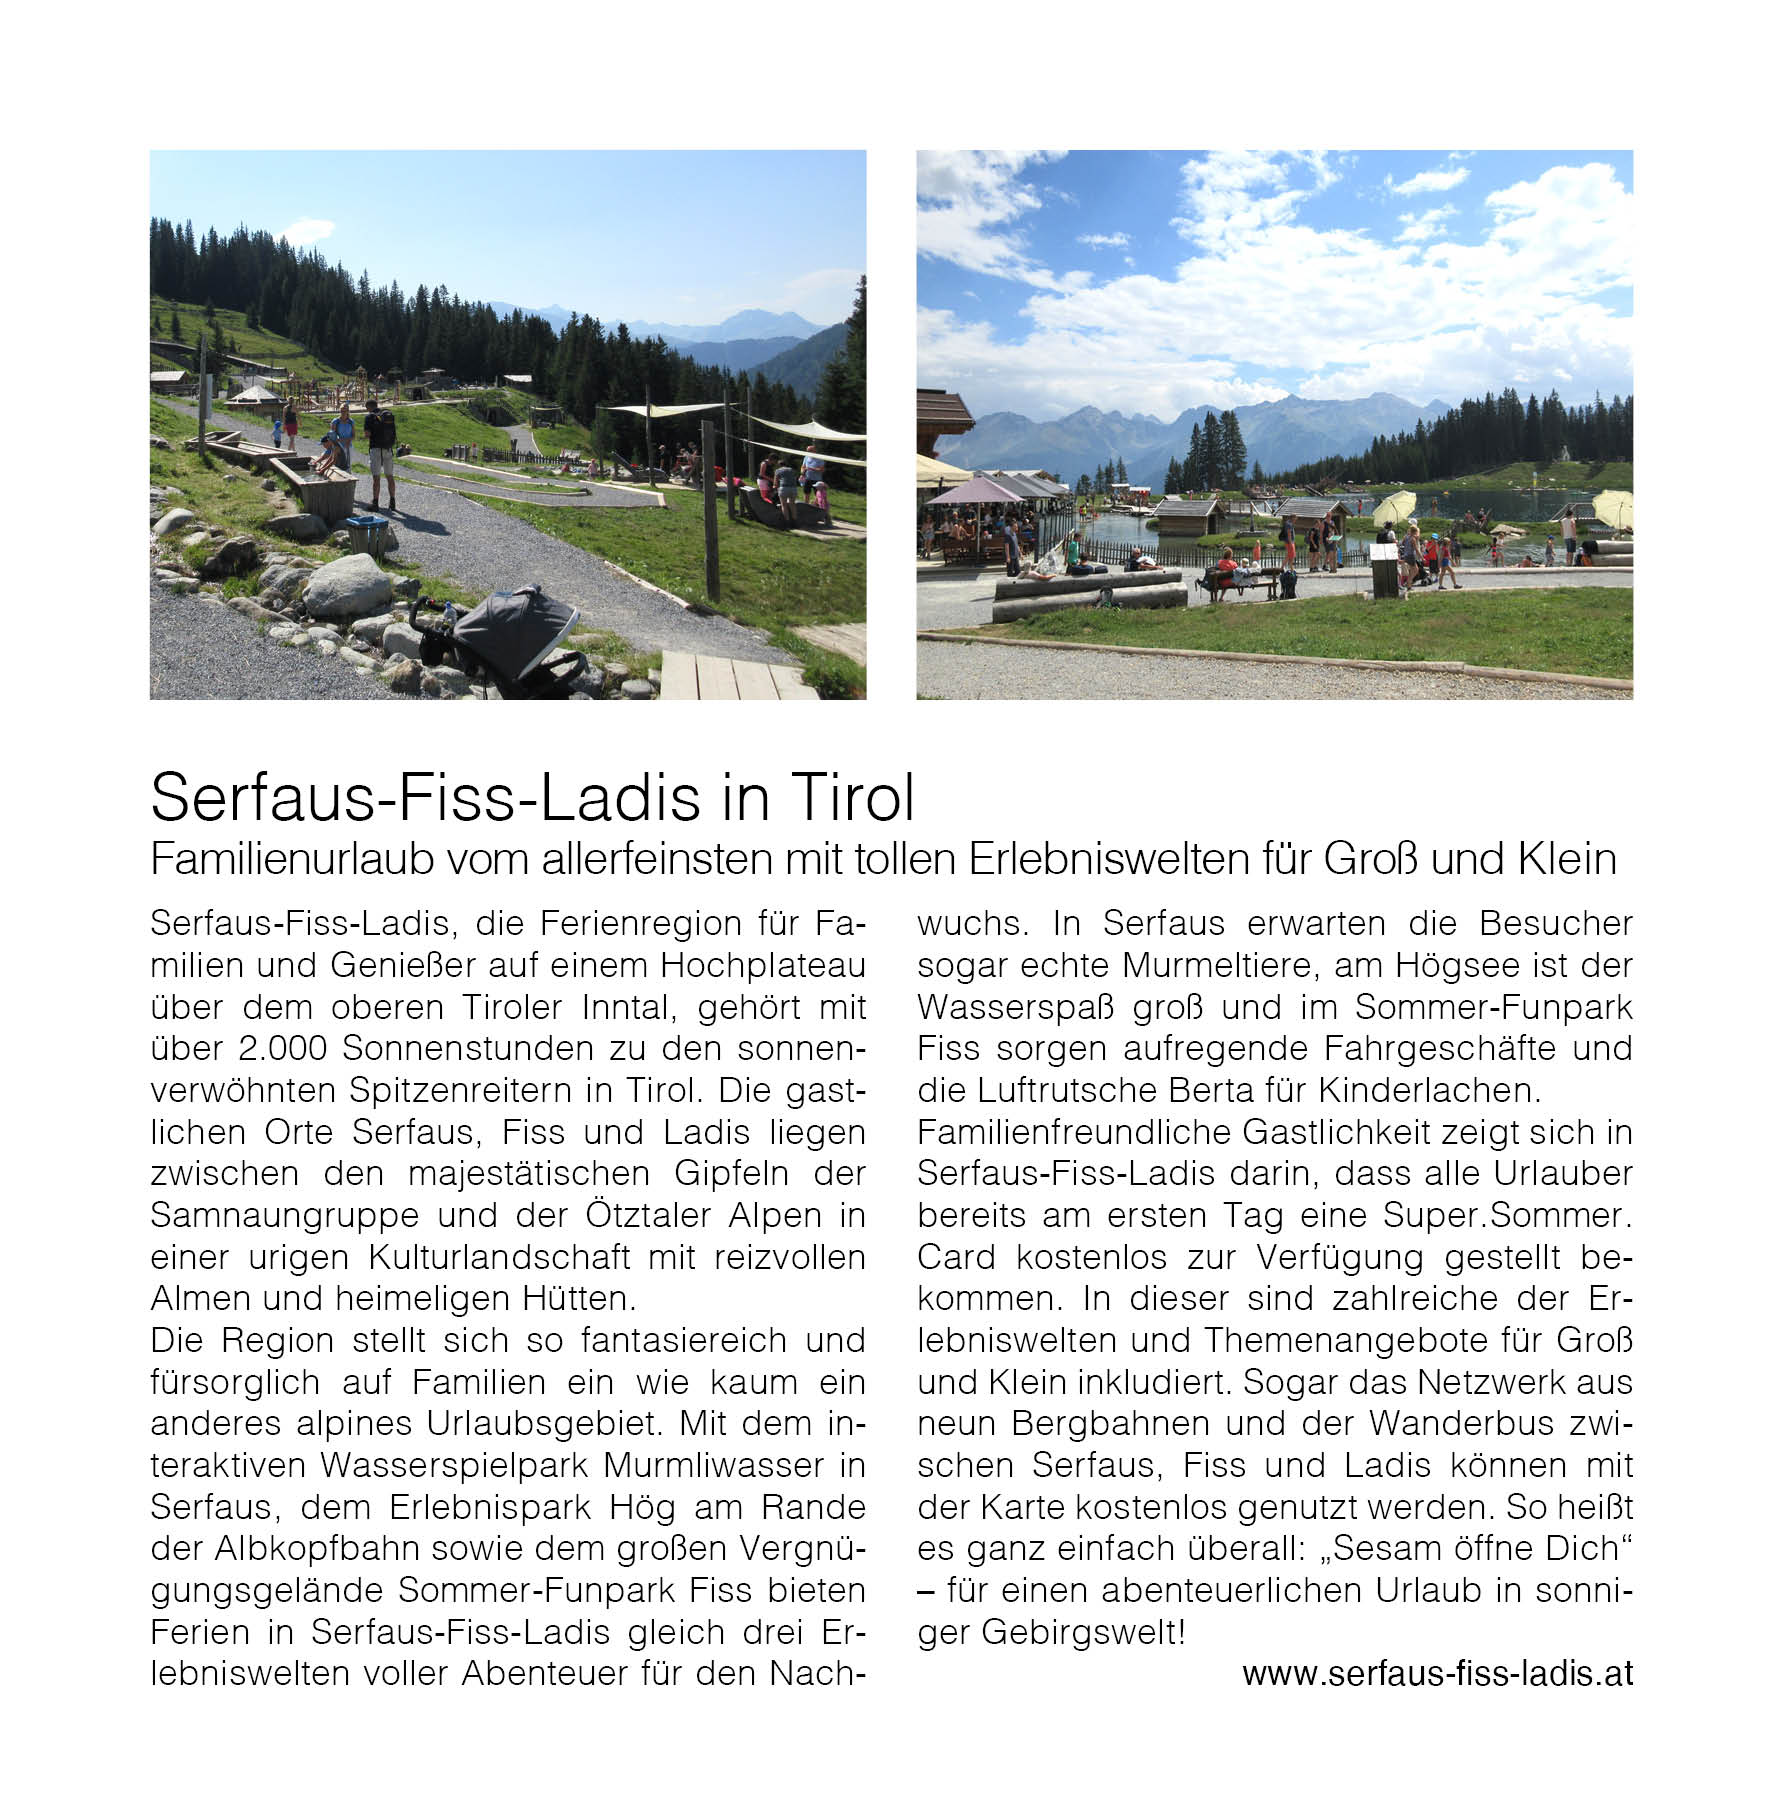 https://www.berge-exclusiv.de/wp-content/uploads/Pocket-Guide-18041643.jpg